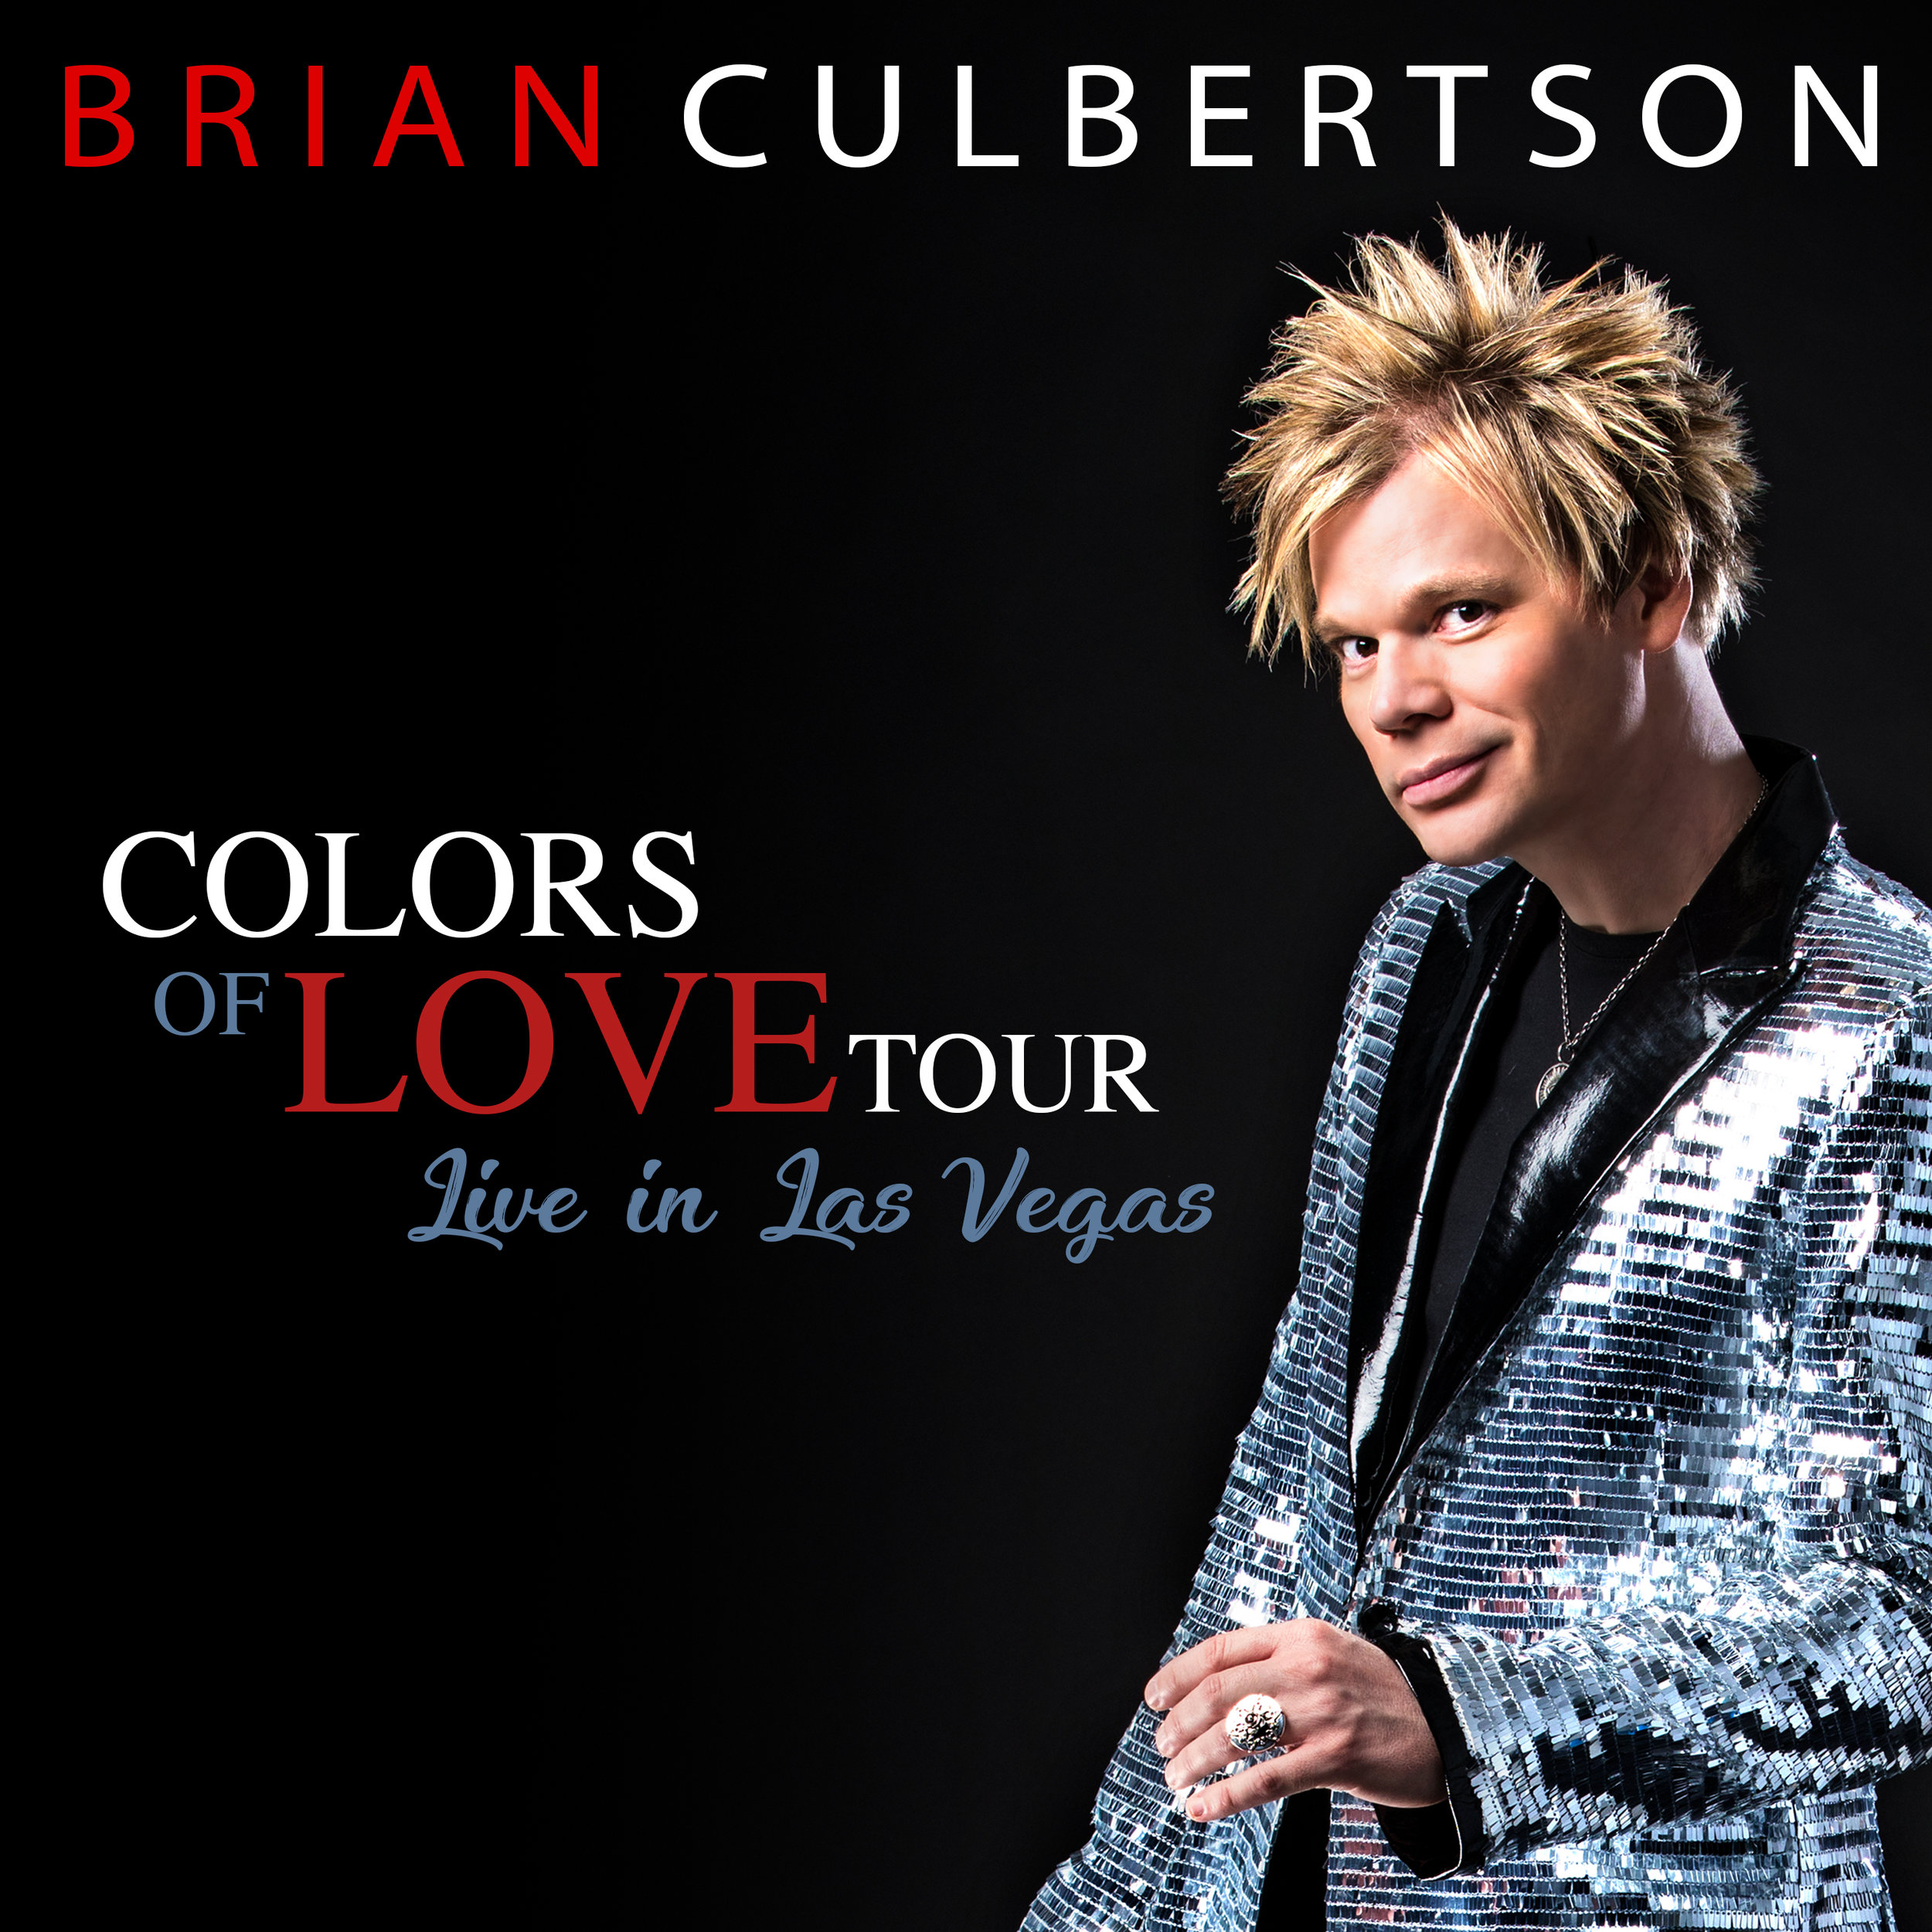 Colors of Love Tour - Live in Las Vegas